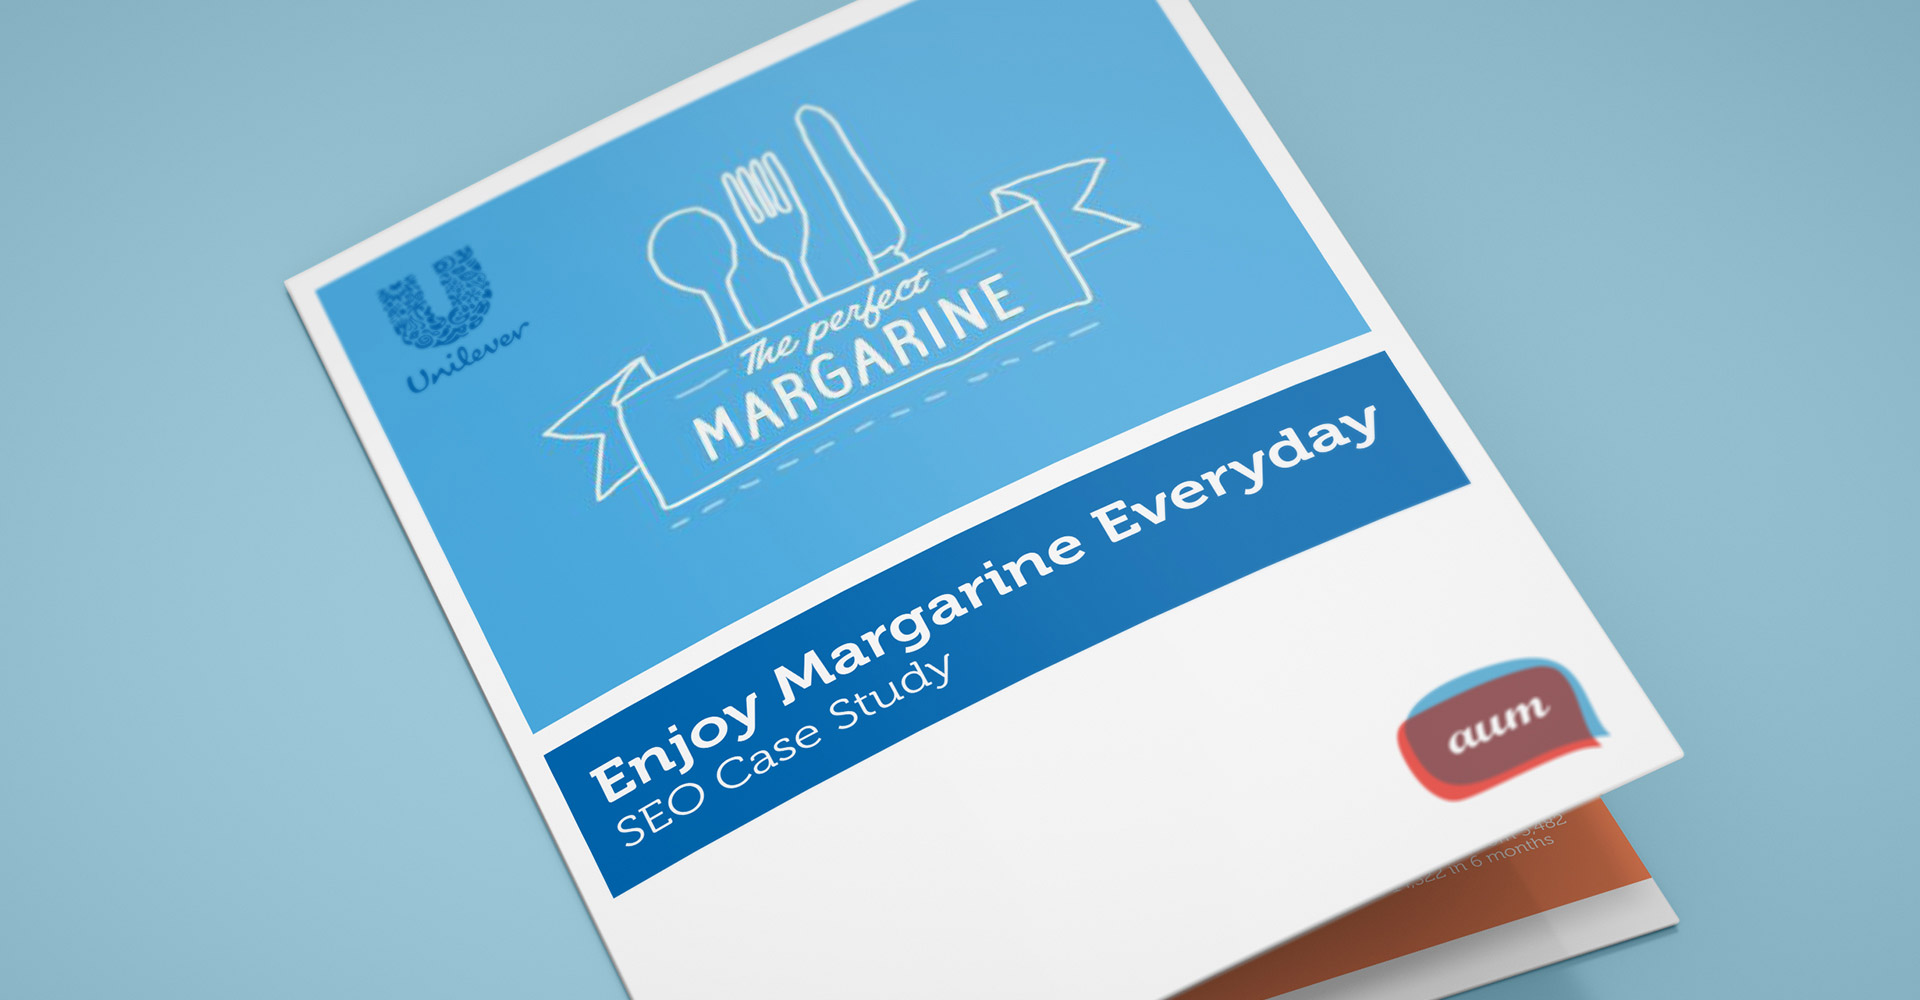 Unilever – enjoy margarine everyday! | SEO